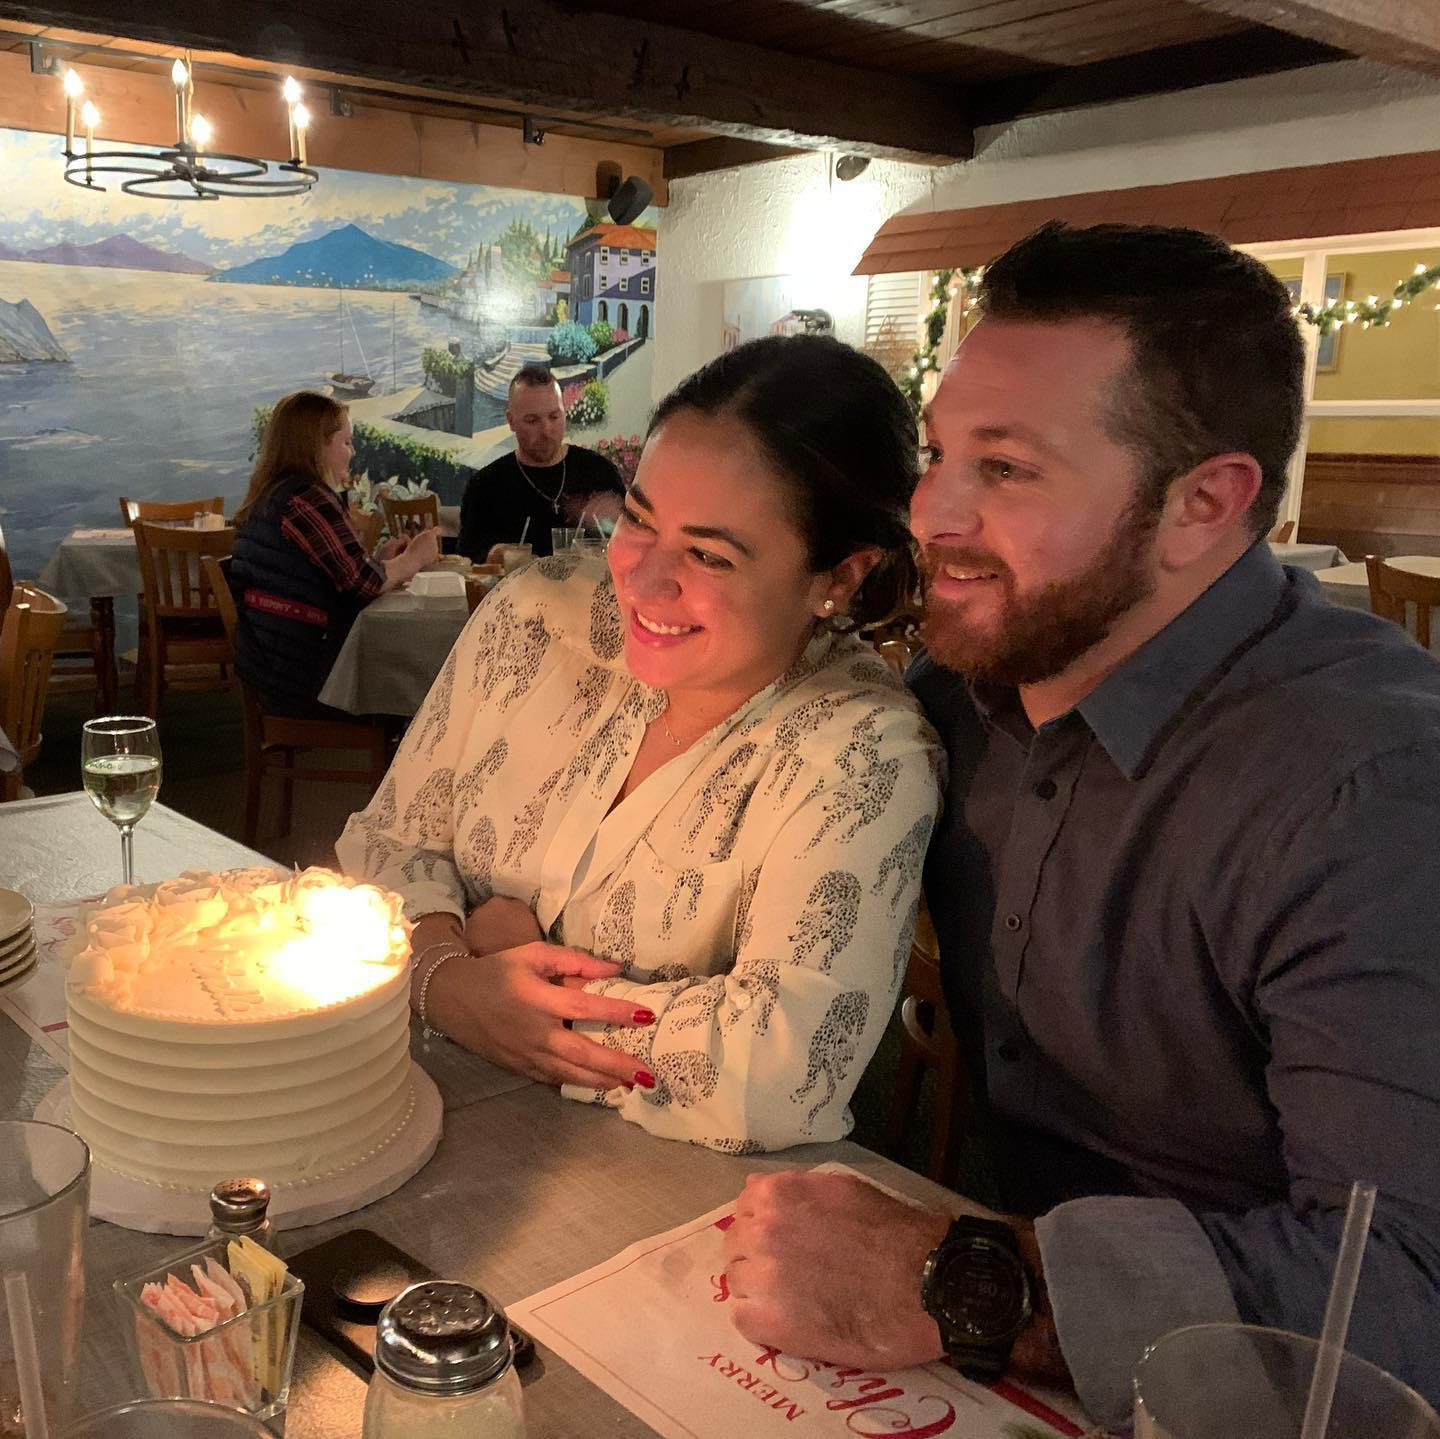 Celebrating our civil marriage on December 27, 2019 at Il Camino.